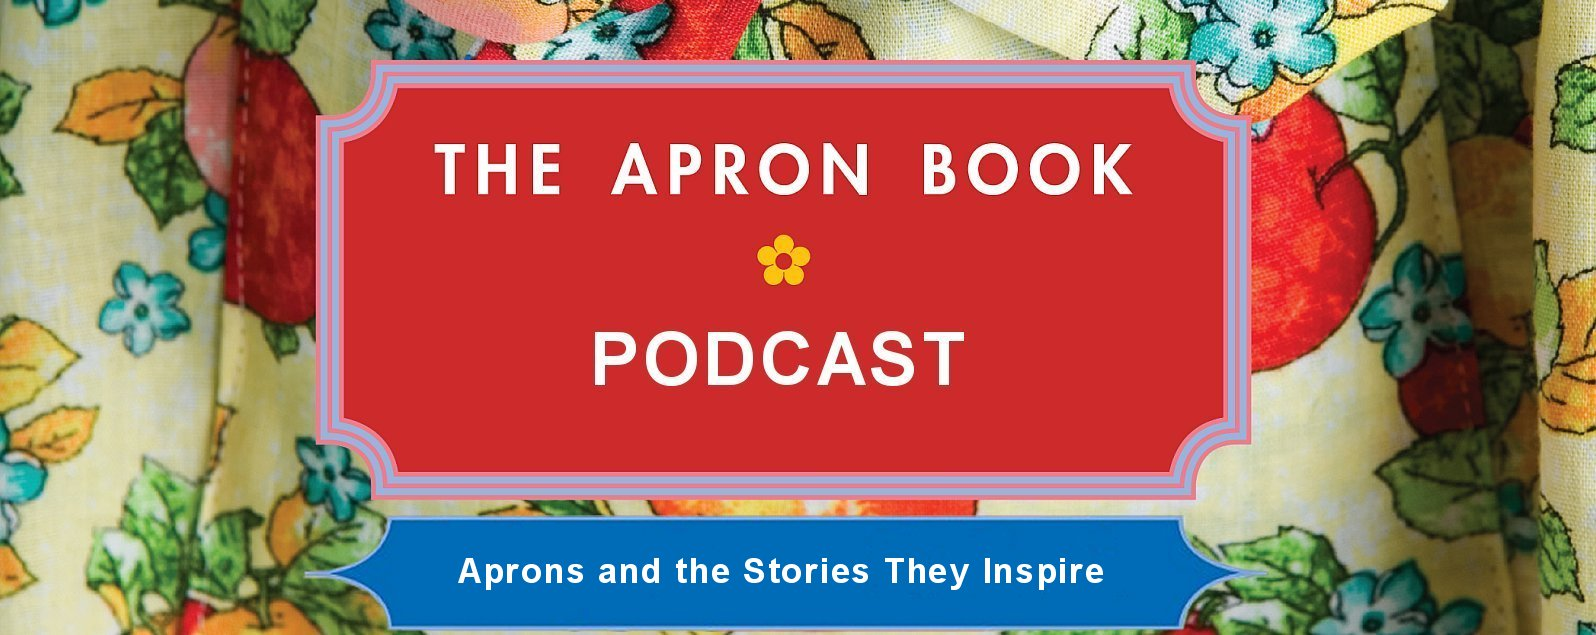 THE APRON BOOK Podcast